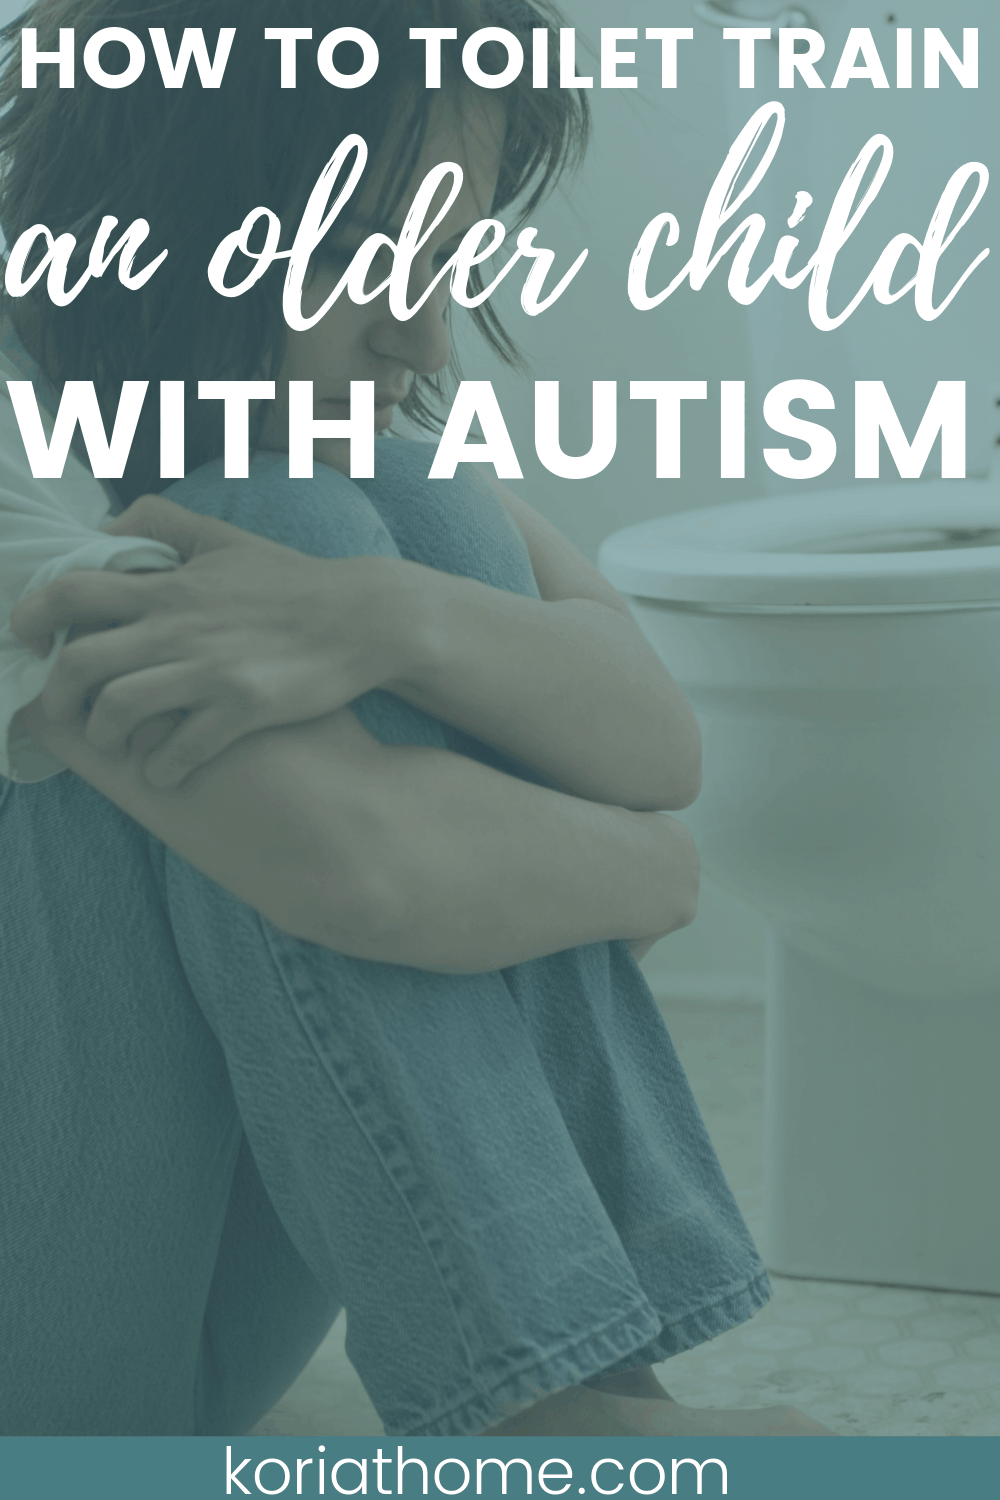 How to Toilet Train an Older Child or Tween on the Autism Spectrum 1